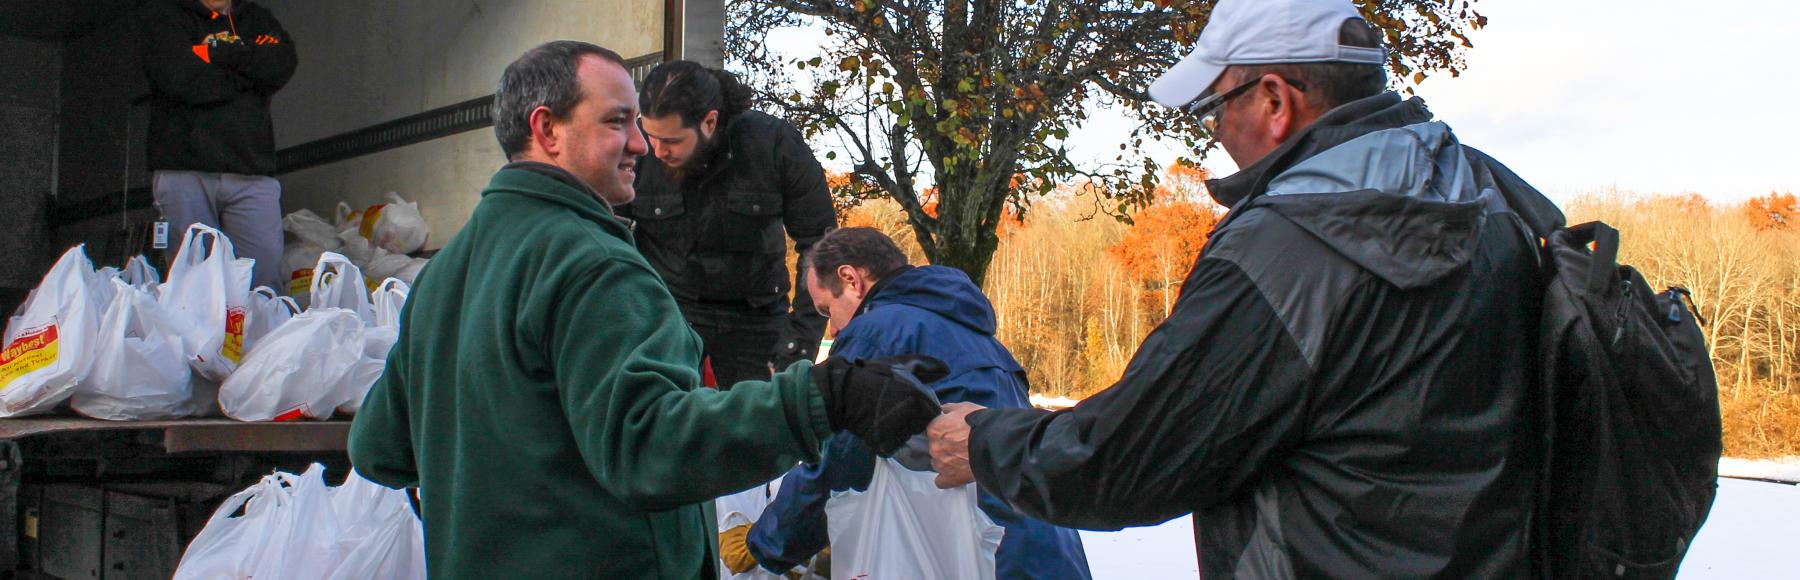 A man in a green jacket and blue jeans hands a sack filled with a turkey to a man with a white baseball cap with a black jacket, blue jeans and a backpack.  Three other men are in the background standing in or beside a small refrigerated box truck which contains more sacks of turkeys which will be handed out.